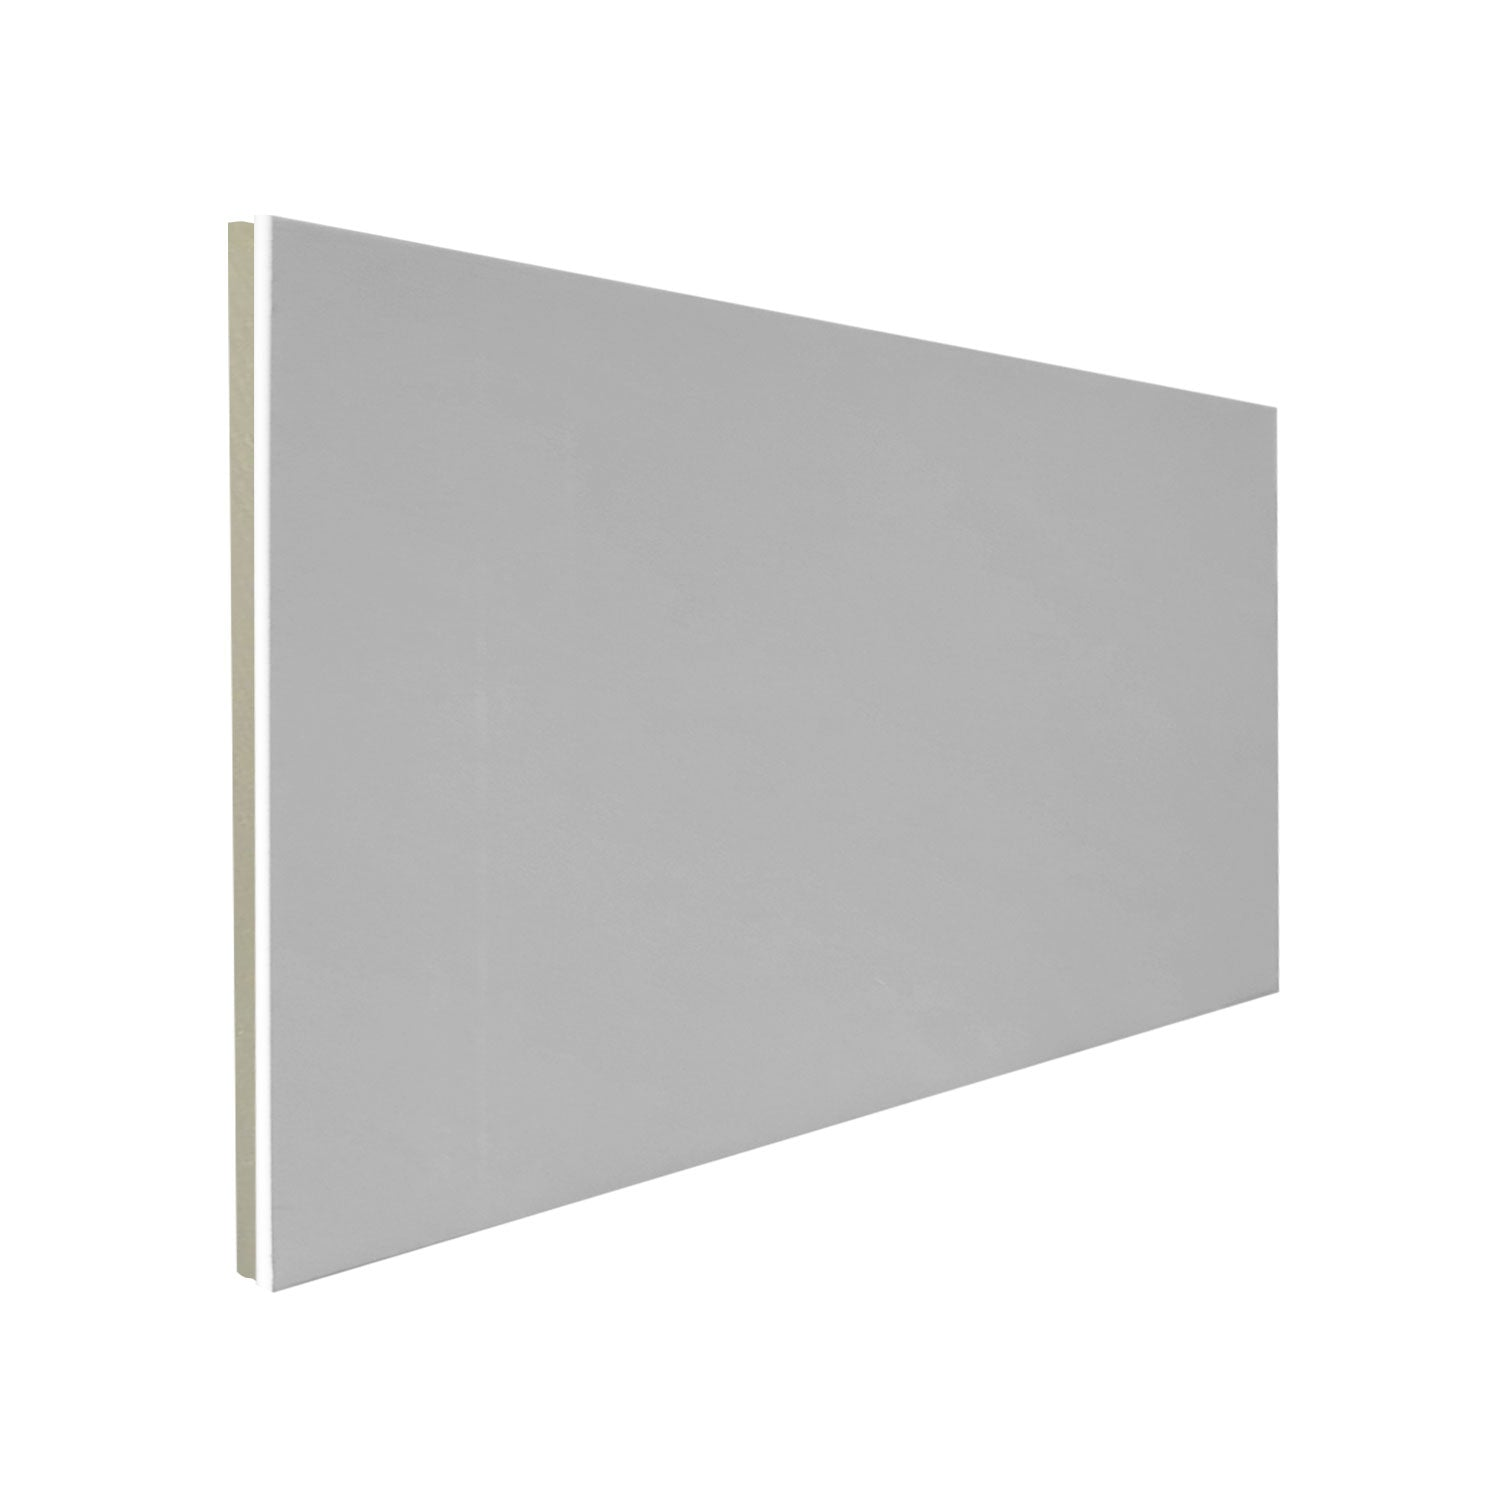 Thermal Check Plasterboard 8' x 4' x 50mm